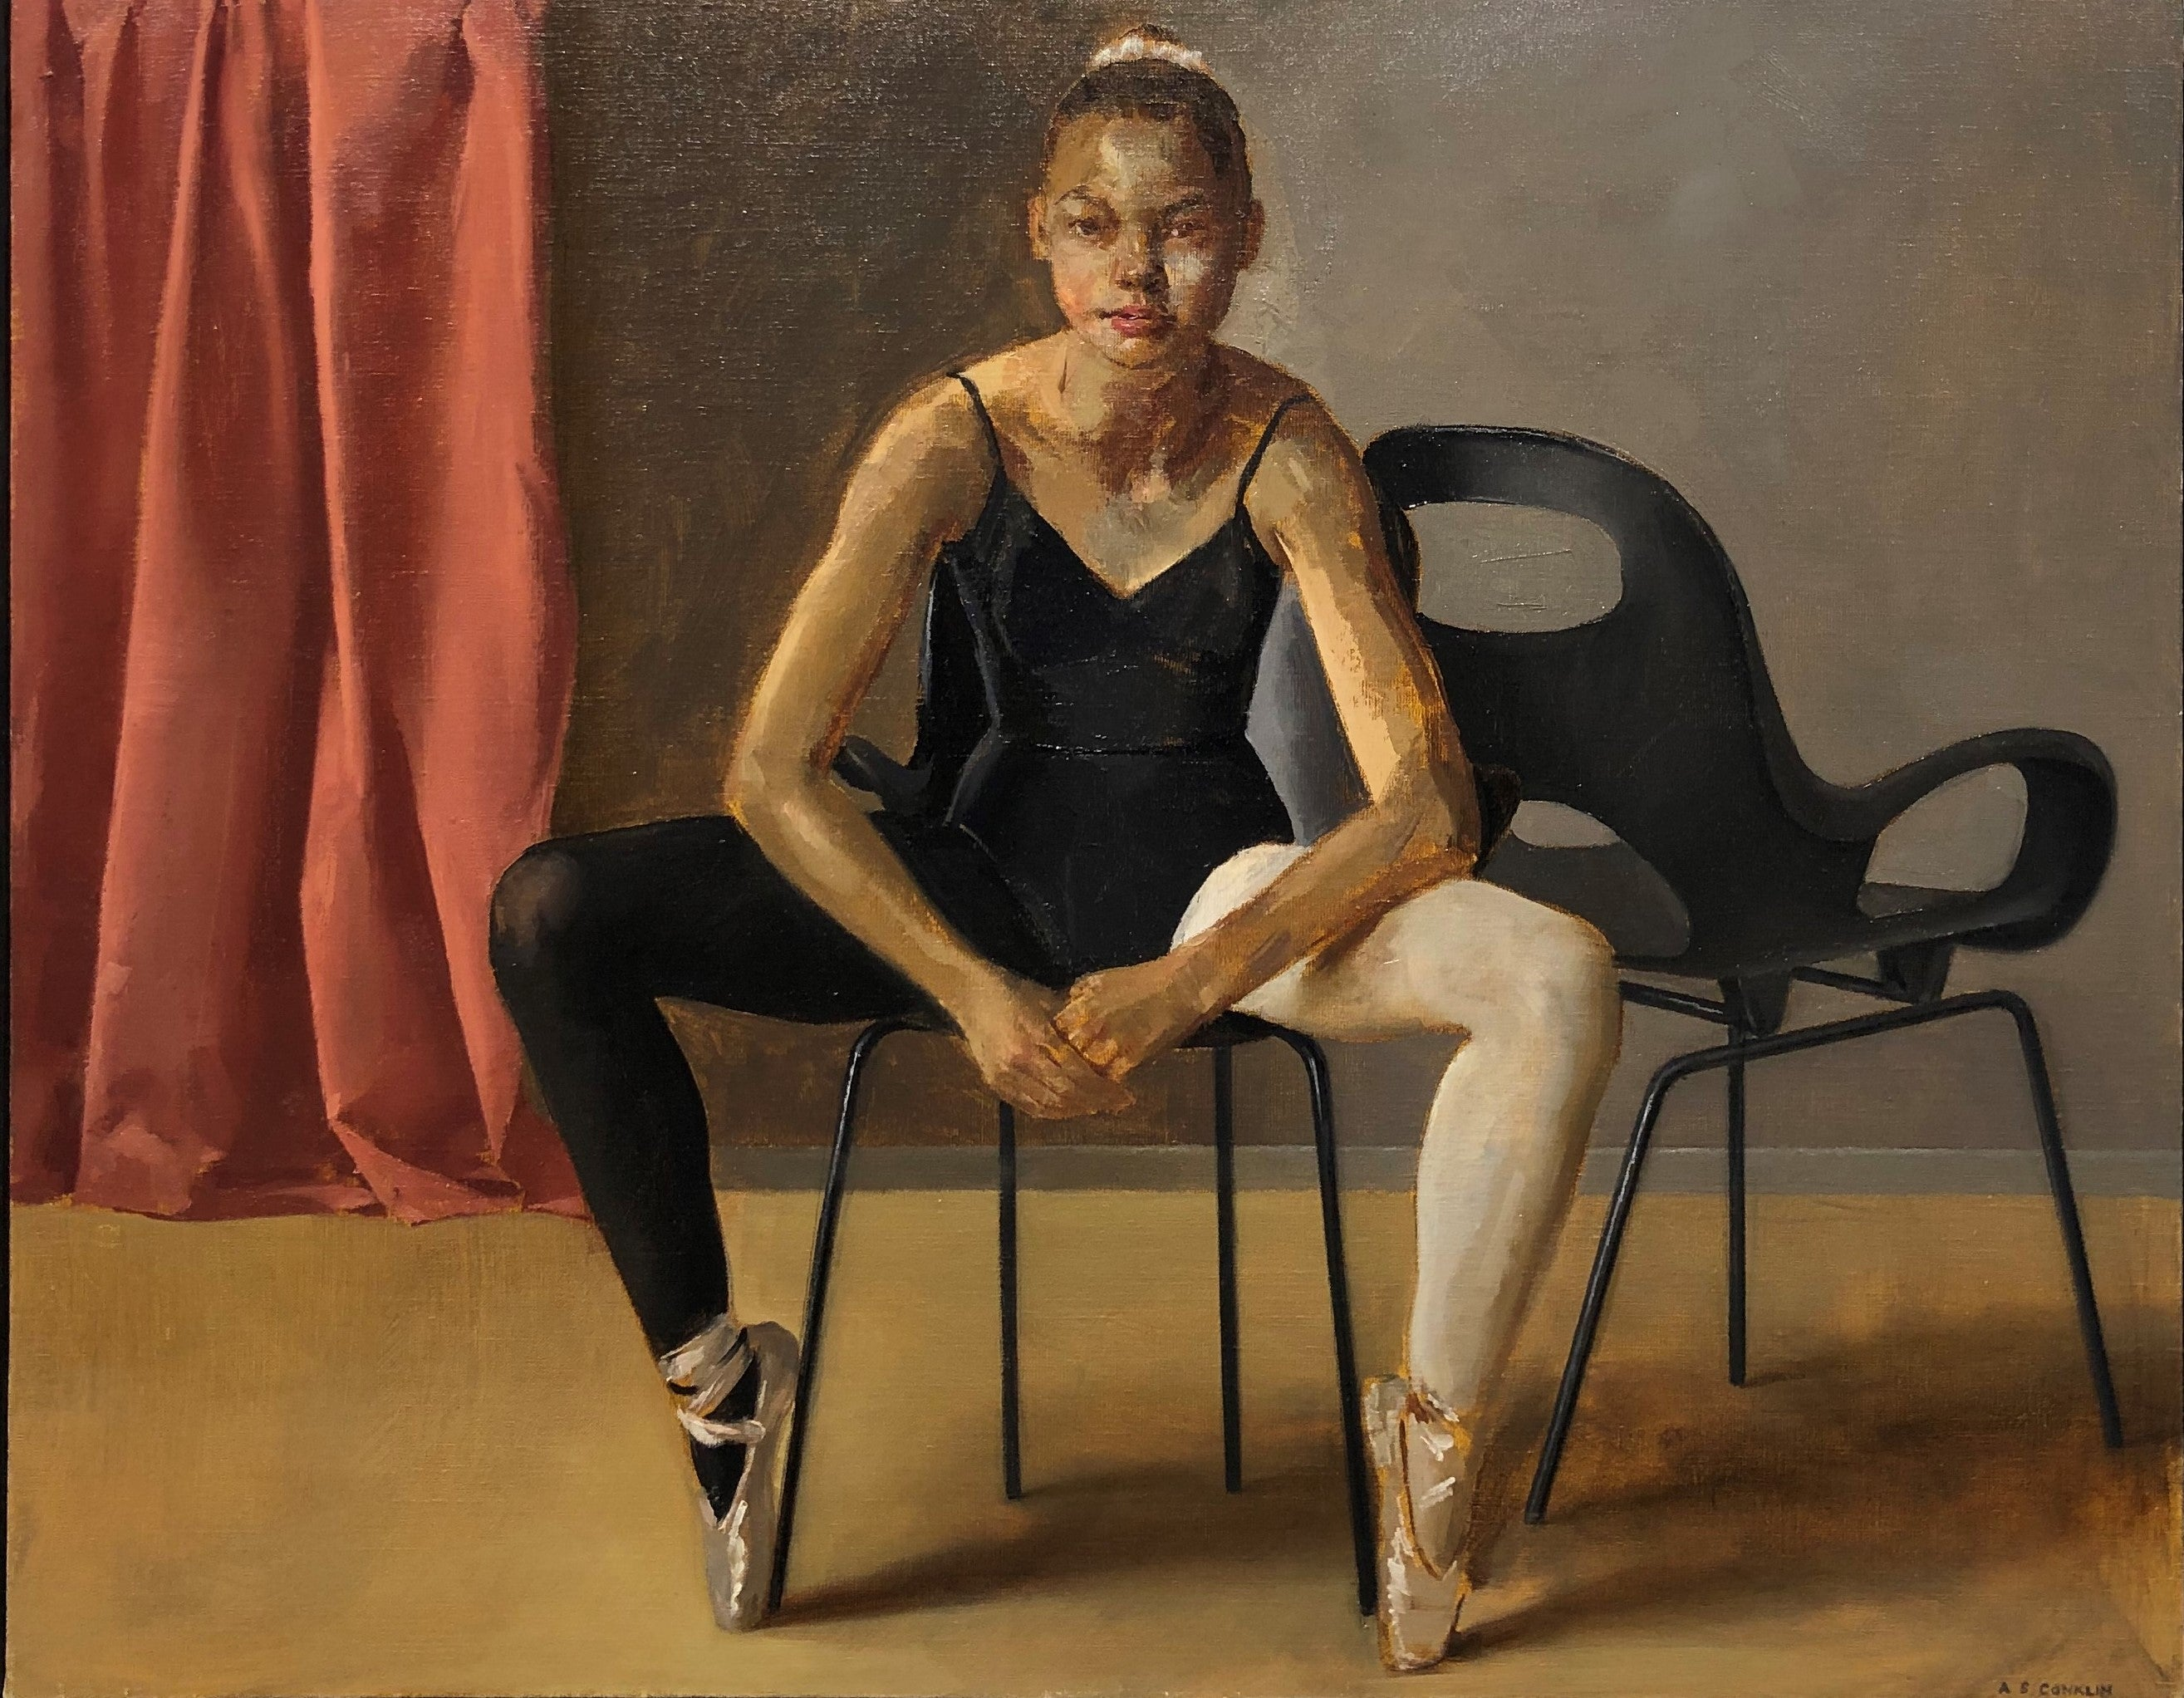 August in Leotard Seated on Oh Chair, Female Dancer, Original Oil on Panel